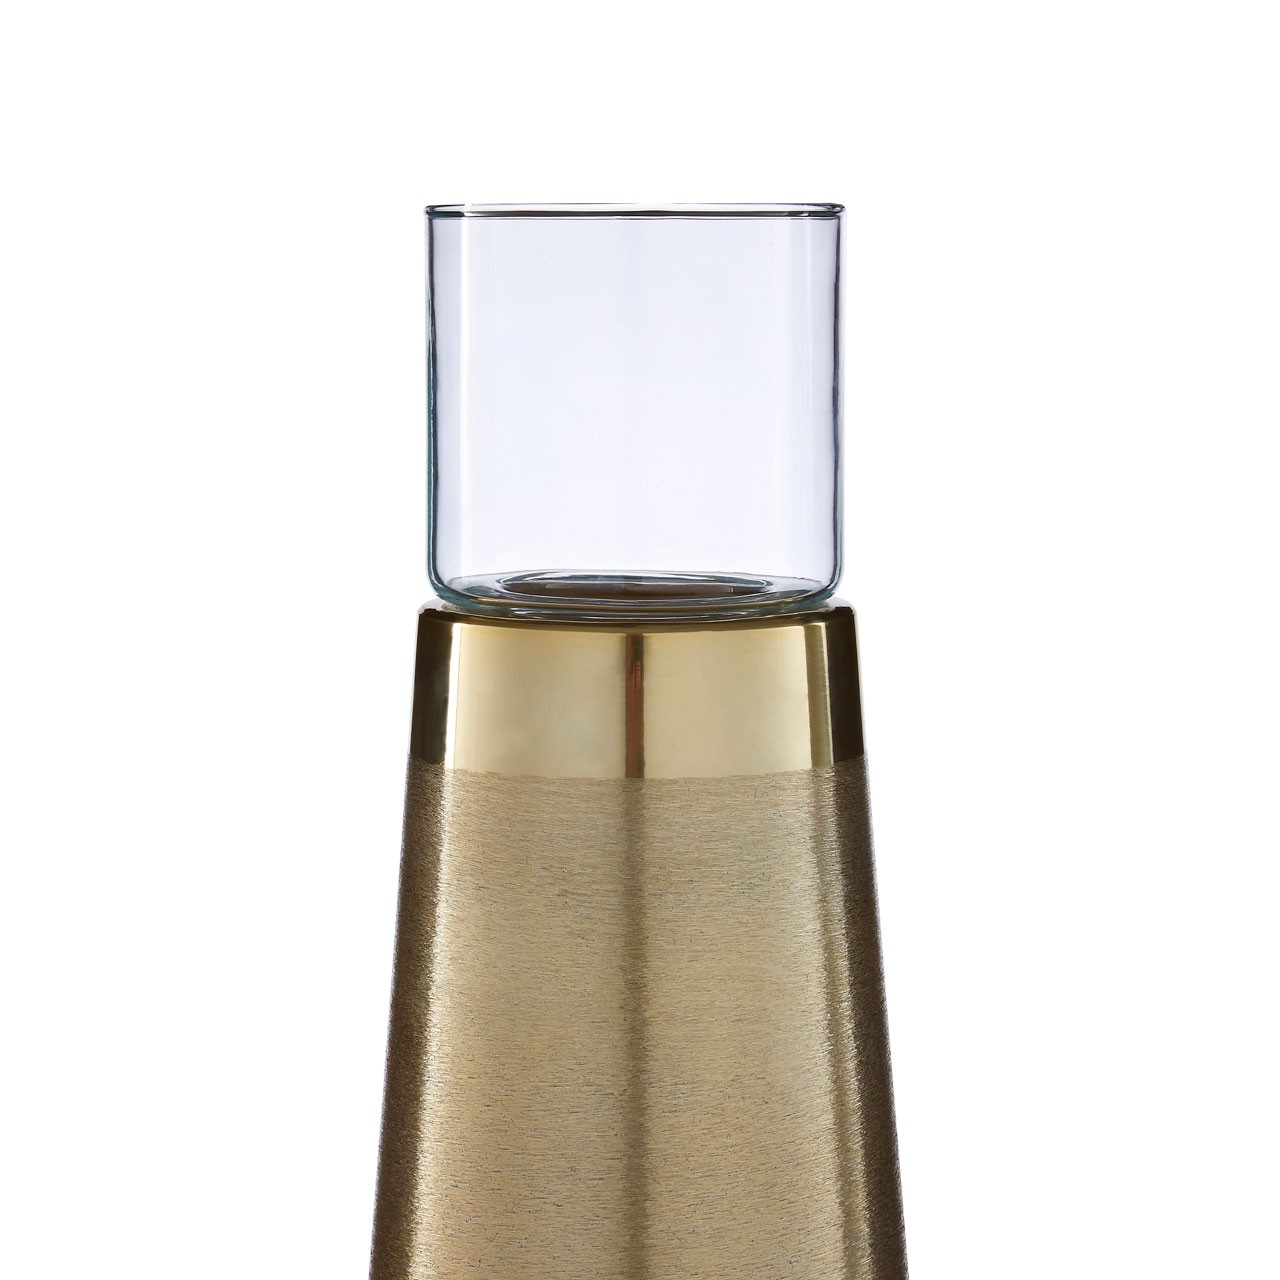 0815 Small brass candle holder